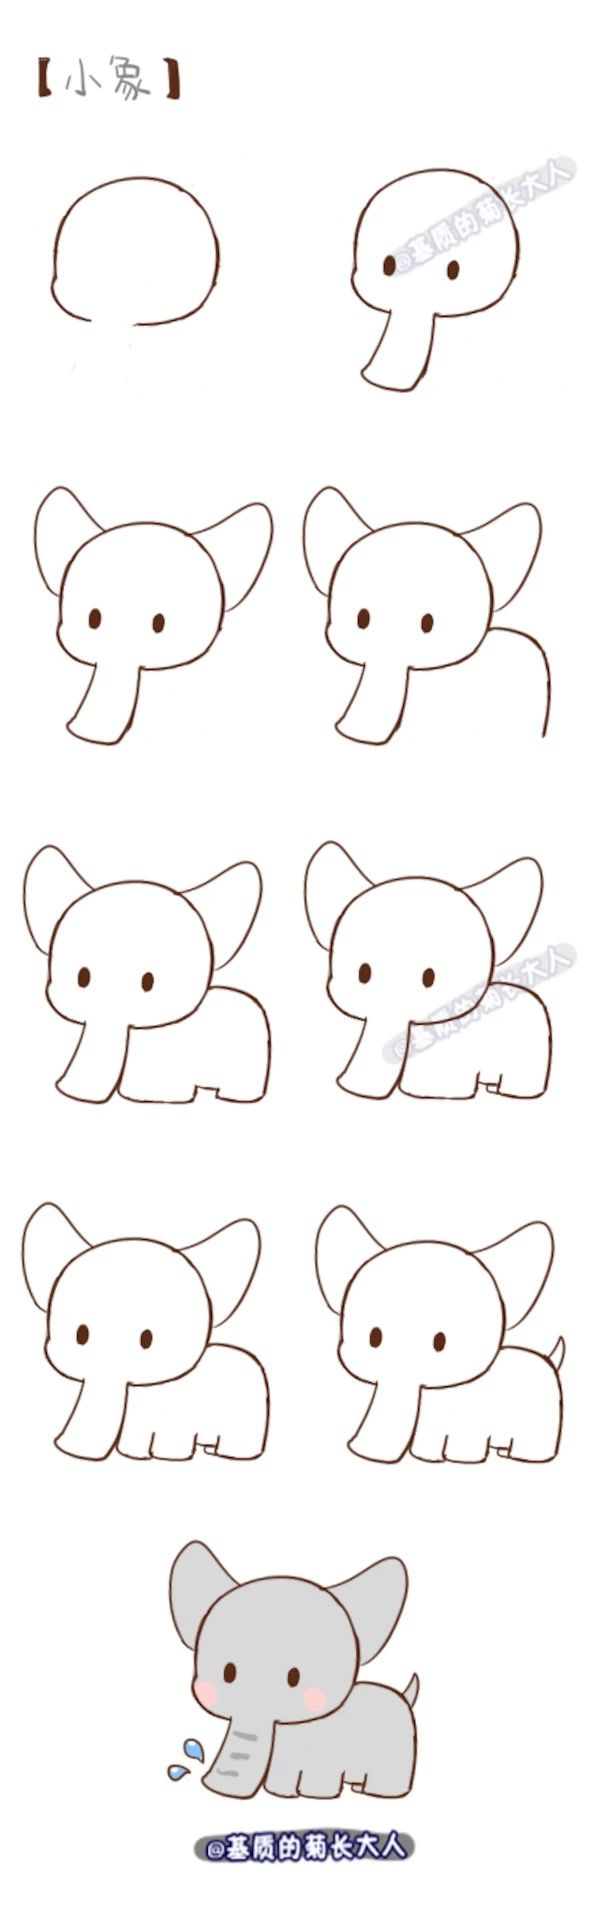 Elephant, Daisy Grew Up In Person From The Matrix @ 2 How To Draw Elephant